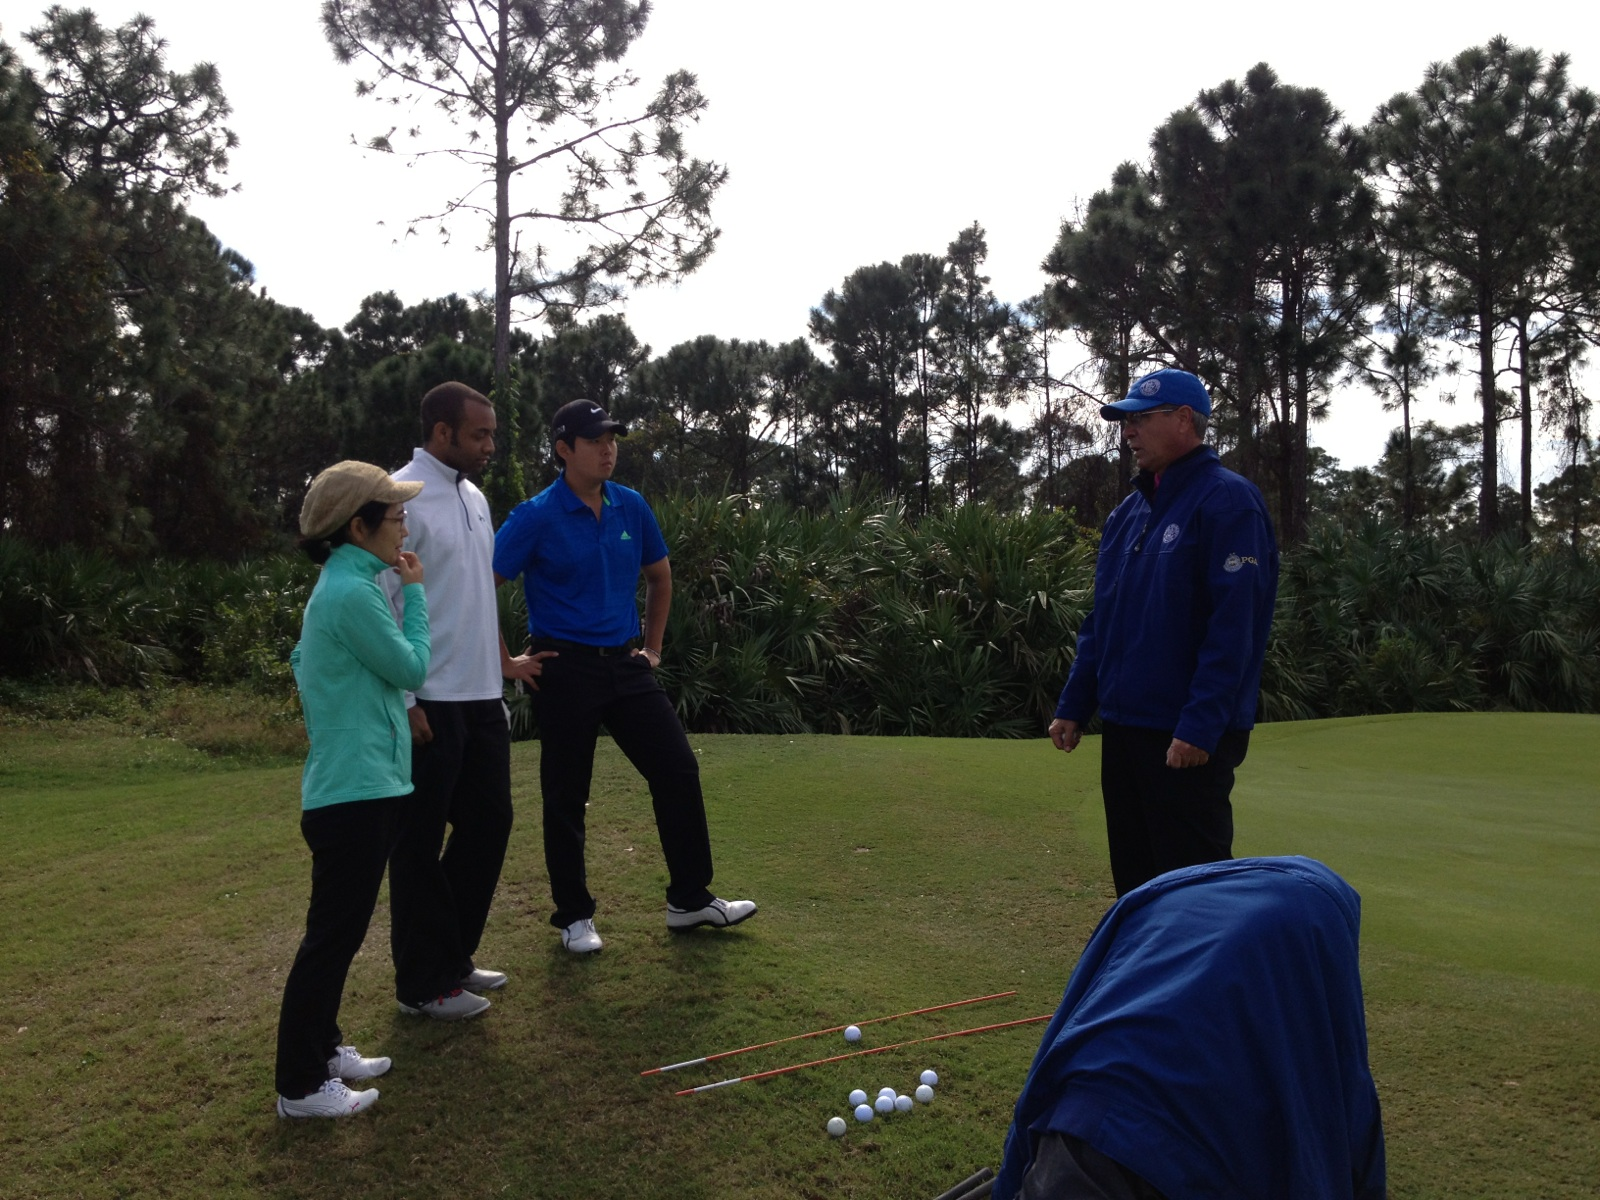 College of Golf and Sport Management Students Work Closely with PGA Professionals